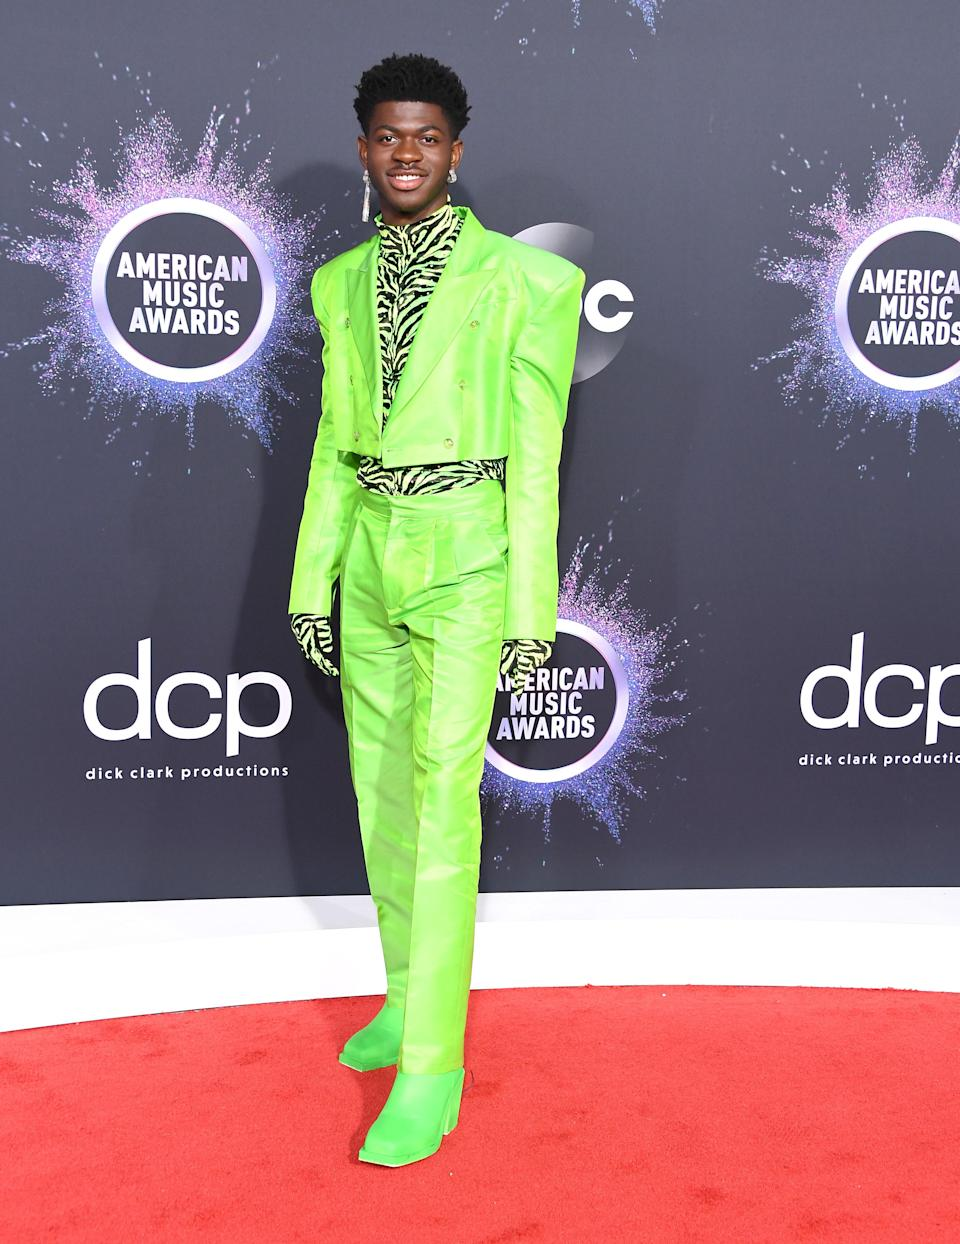 This full neon green suit and zebra combo will go down as one of the best of the decade.